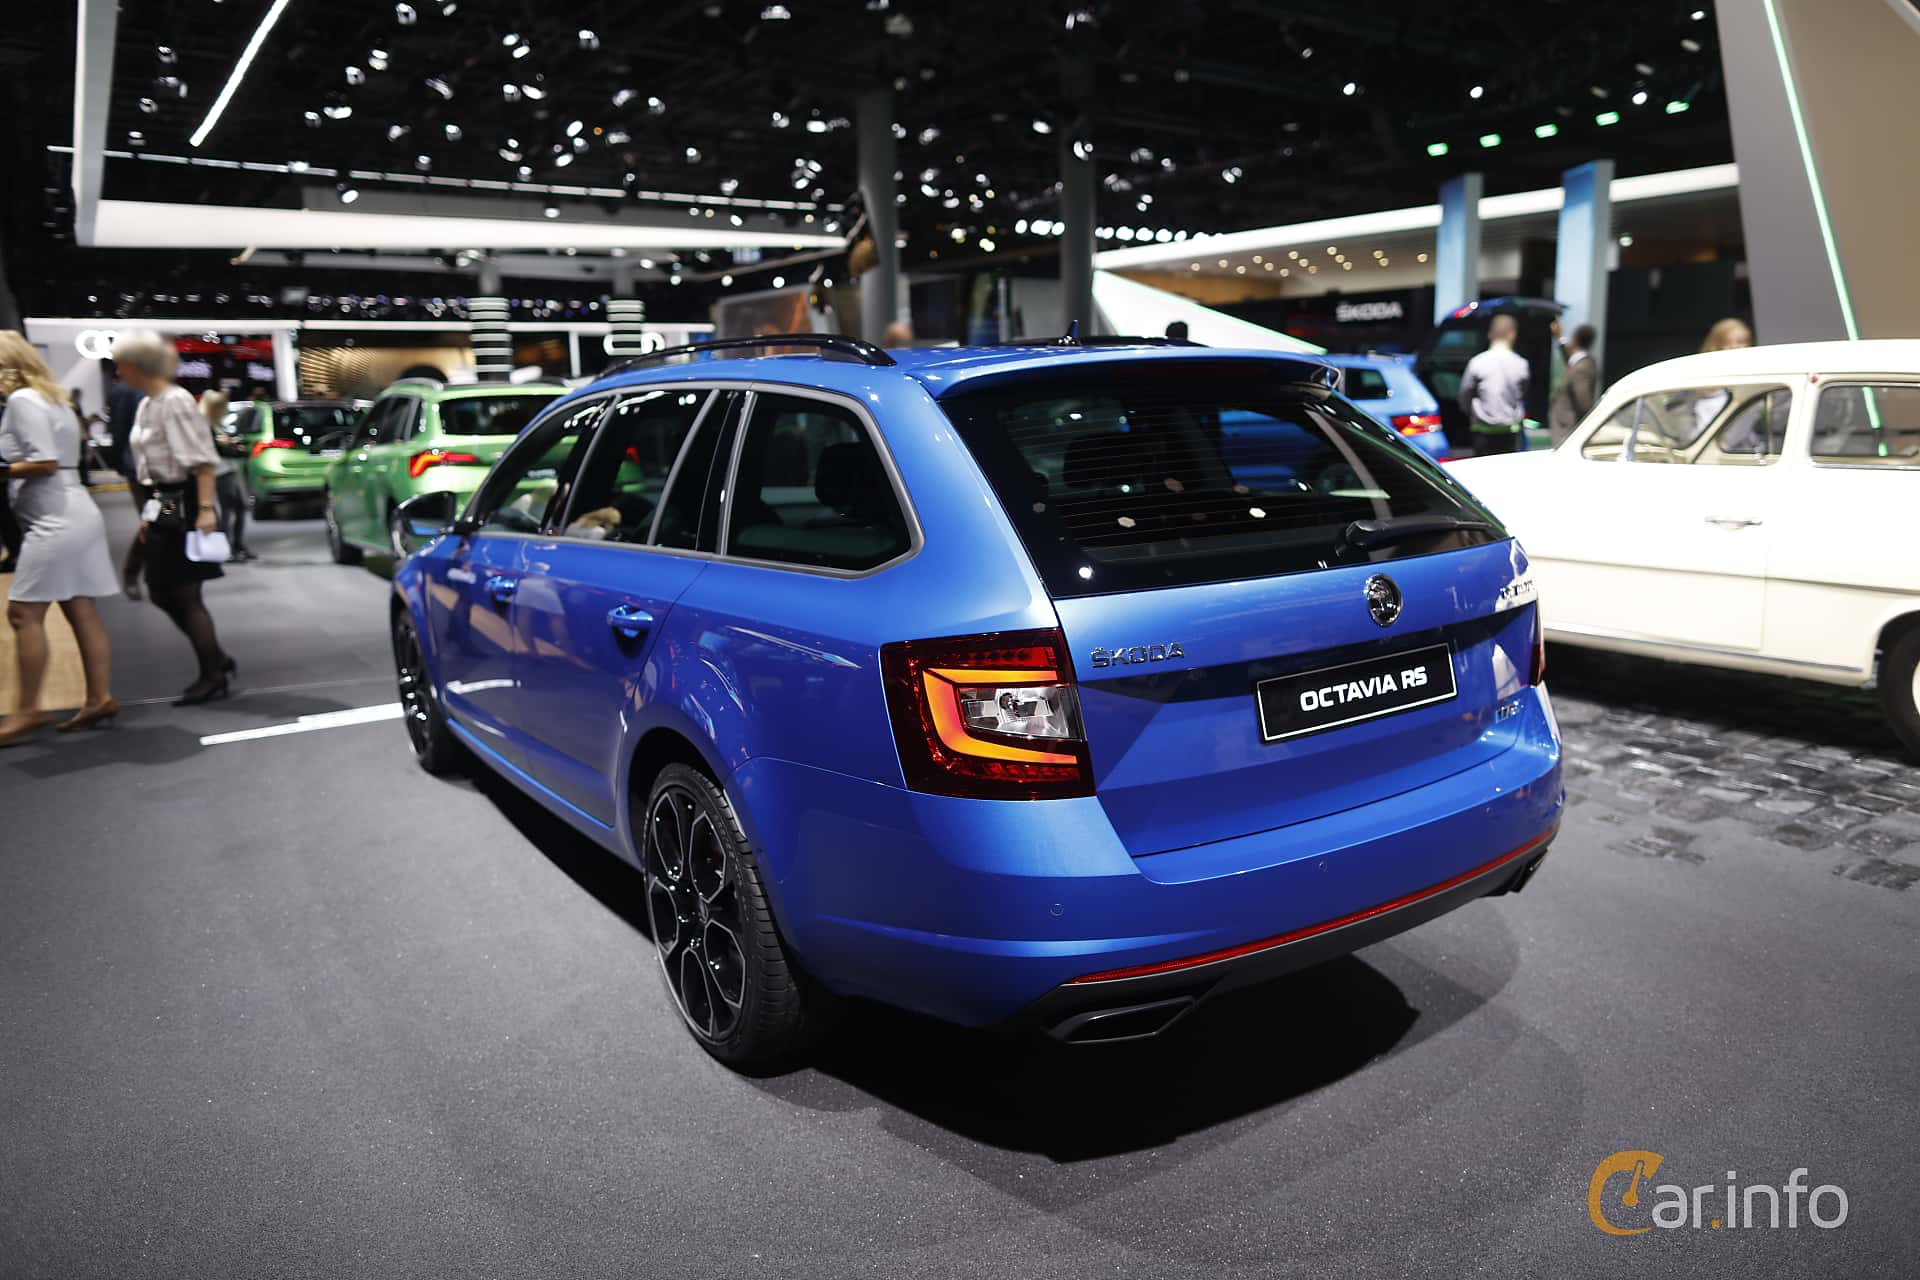 Skoda Octavia RS Combi 2.0 TSI Manual, 245hp, 2020 at IAA 2019